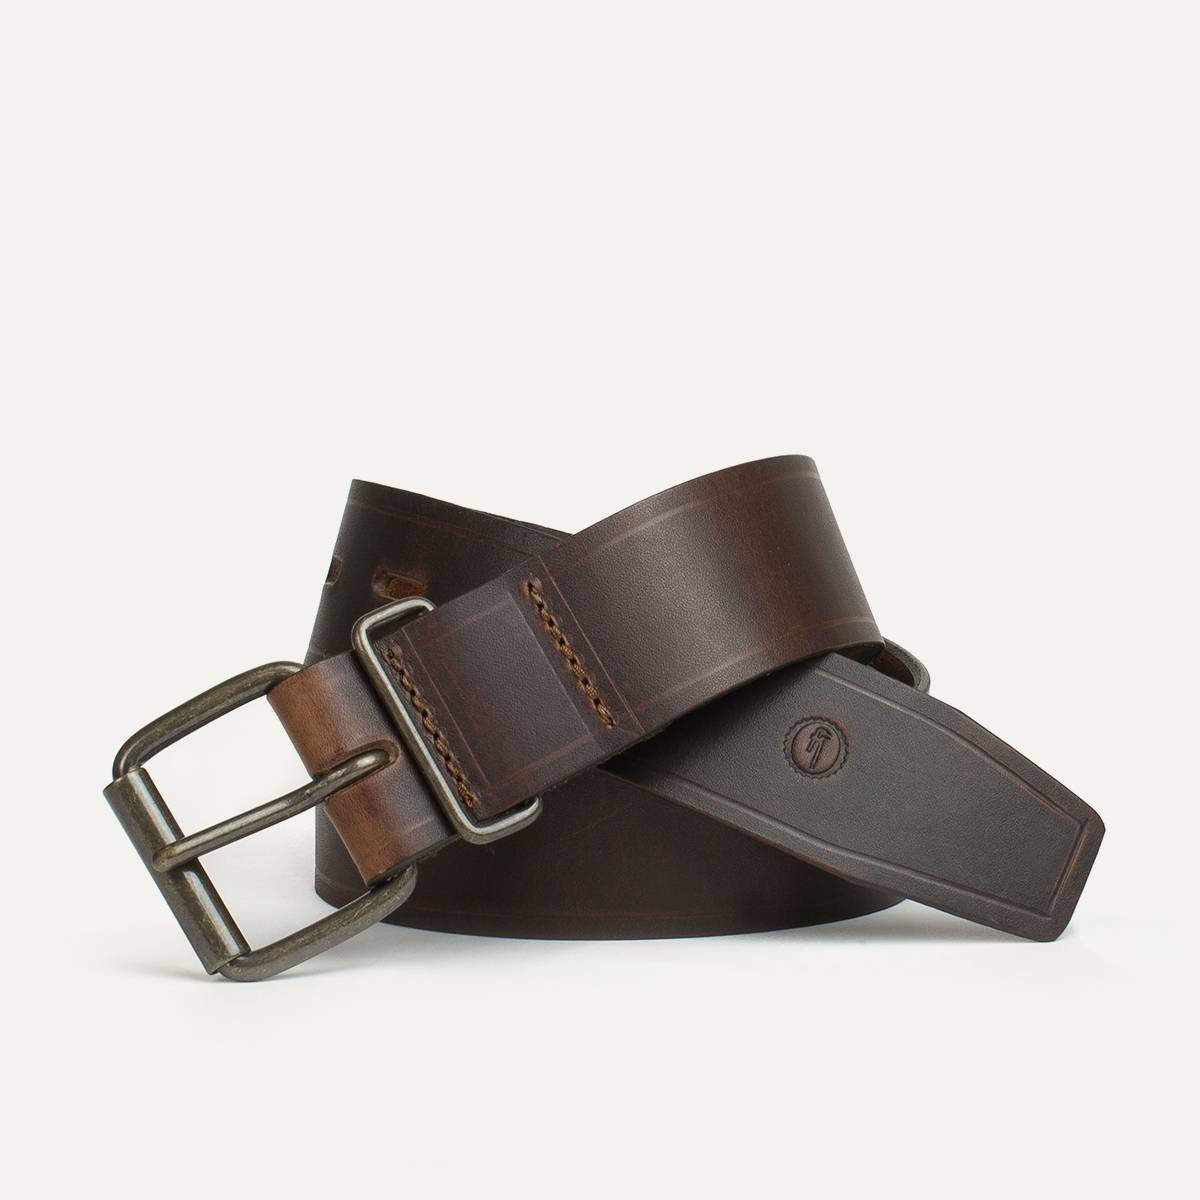 Ceinture cuir homme fred made in france bleu de chauffe for Fabricant canape cuir france